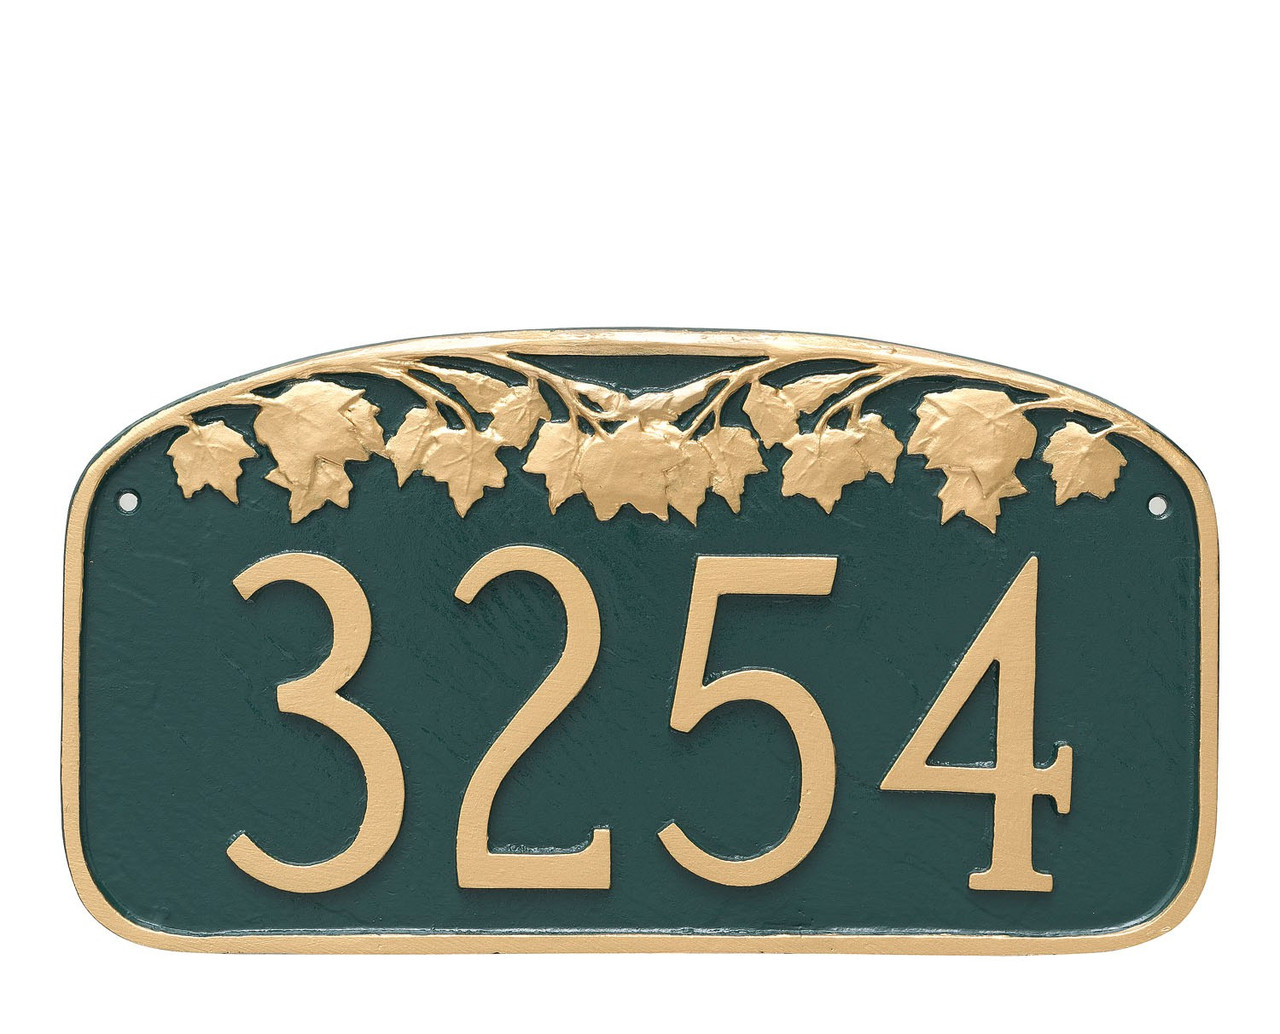 Metal Address Plaque with Maple Leaf design. Shown in Hunter Green/Gold color combination.